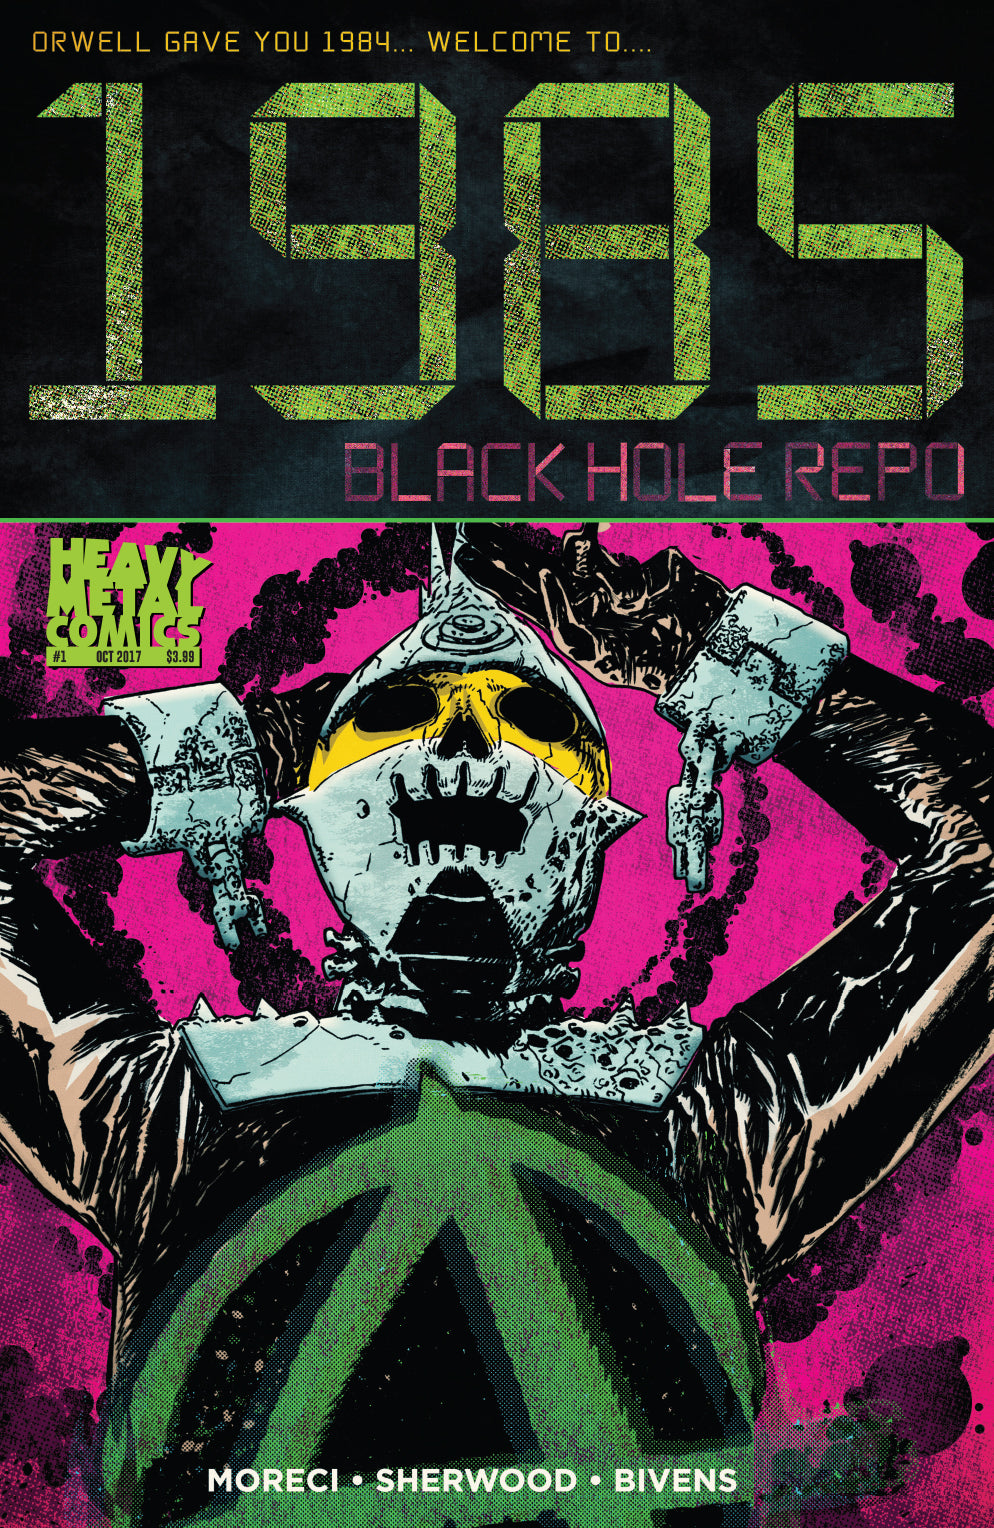 1985: Black Hole Repo #1 - Cover A